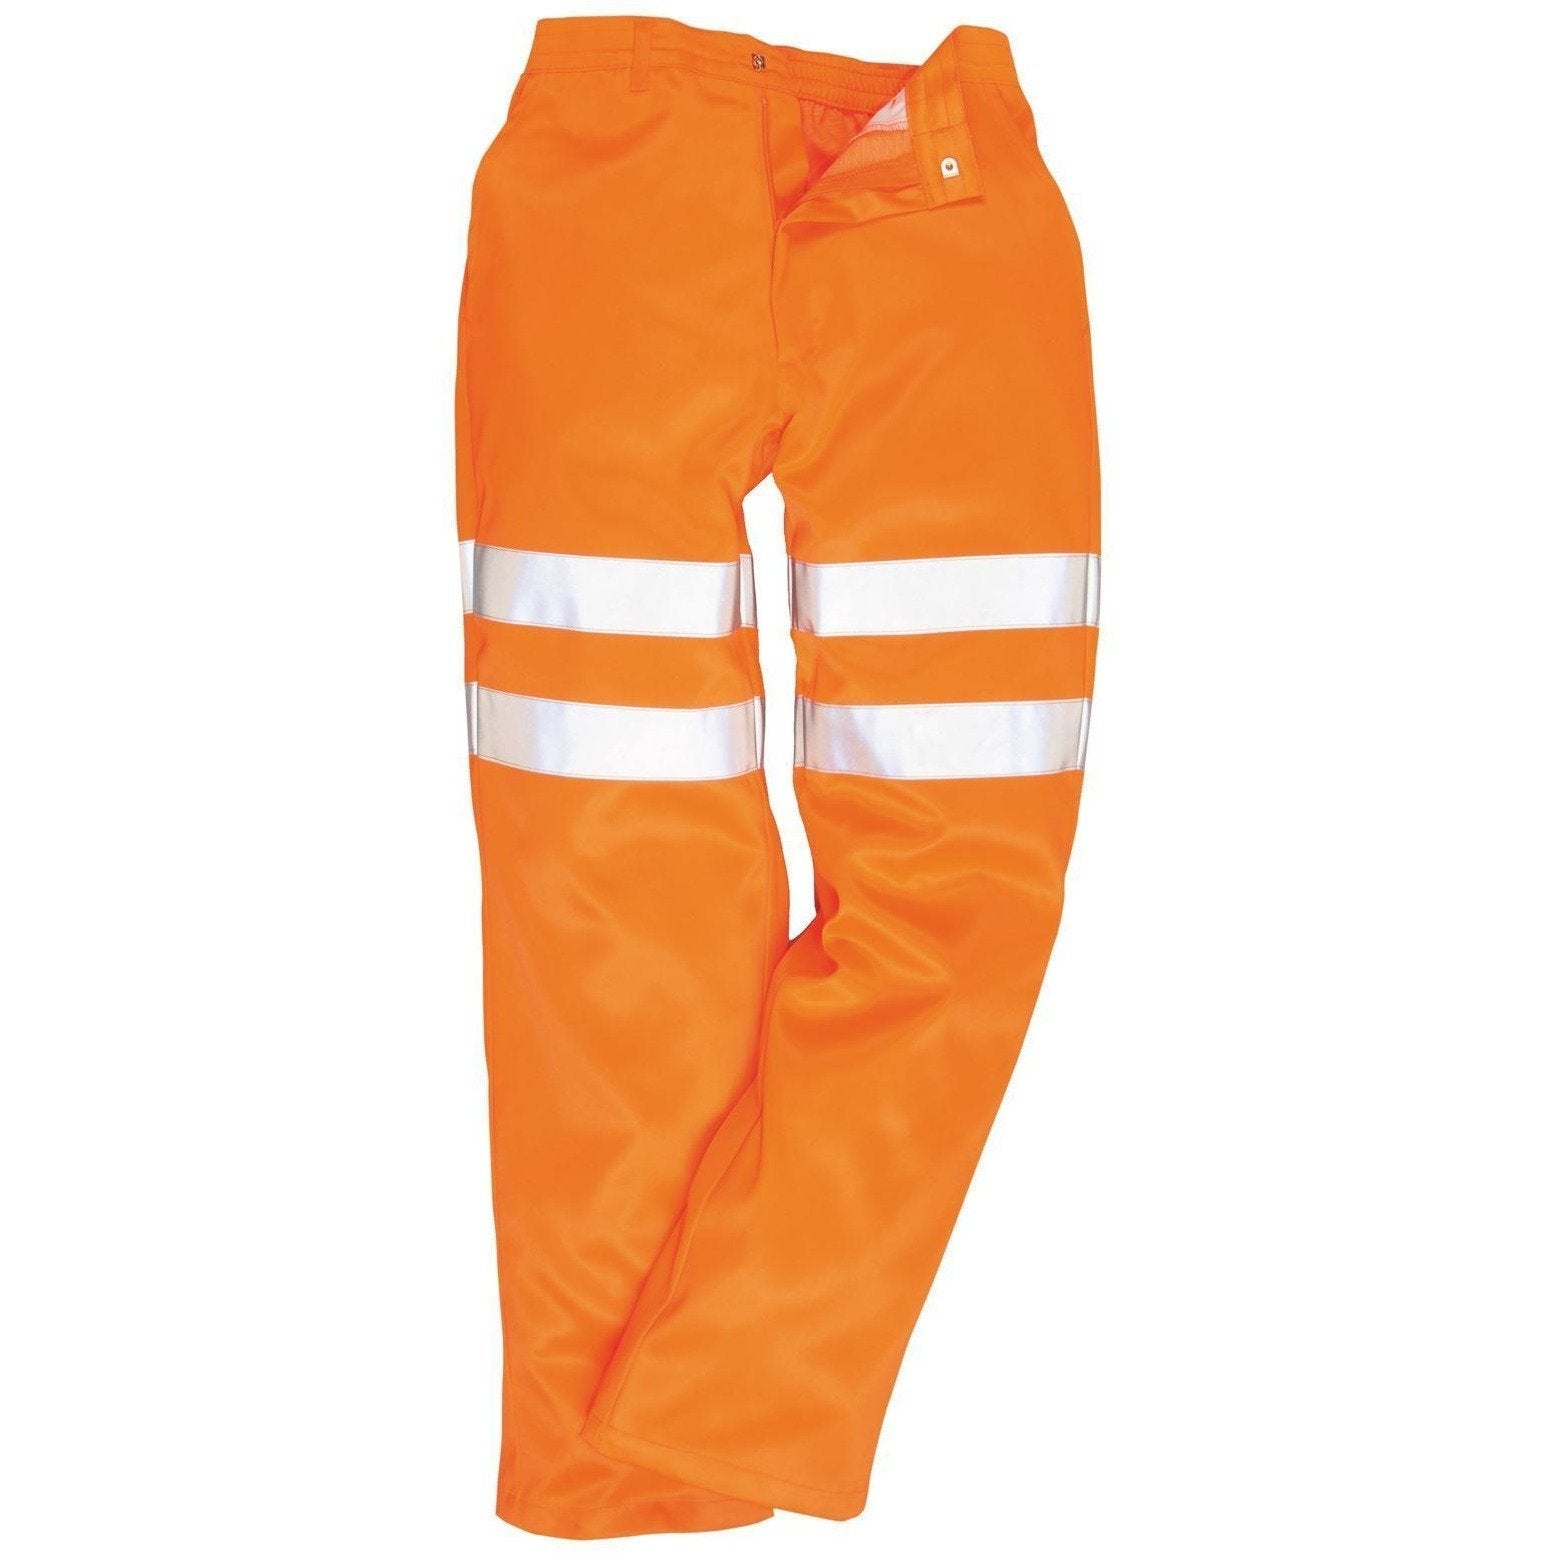 Portwest Hi-Vis Poly-cotton Trousers GO/RT RT45 - reid outdoors